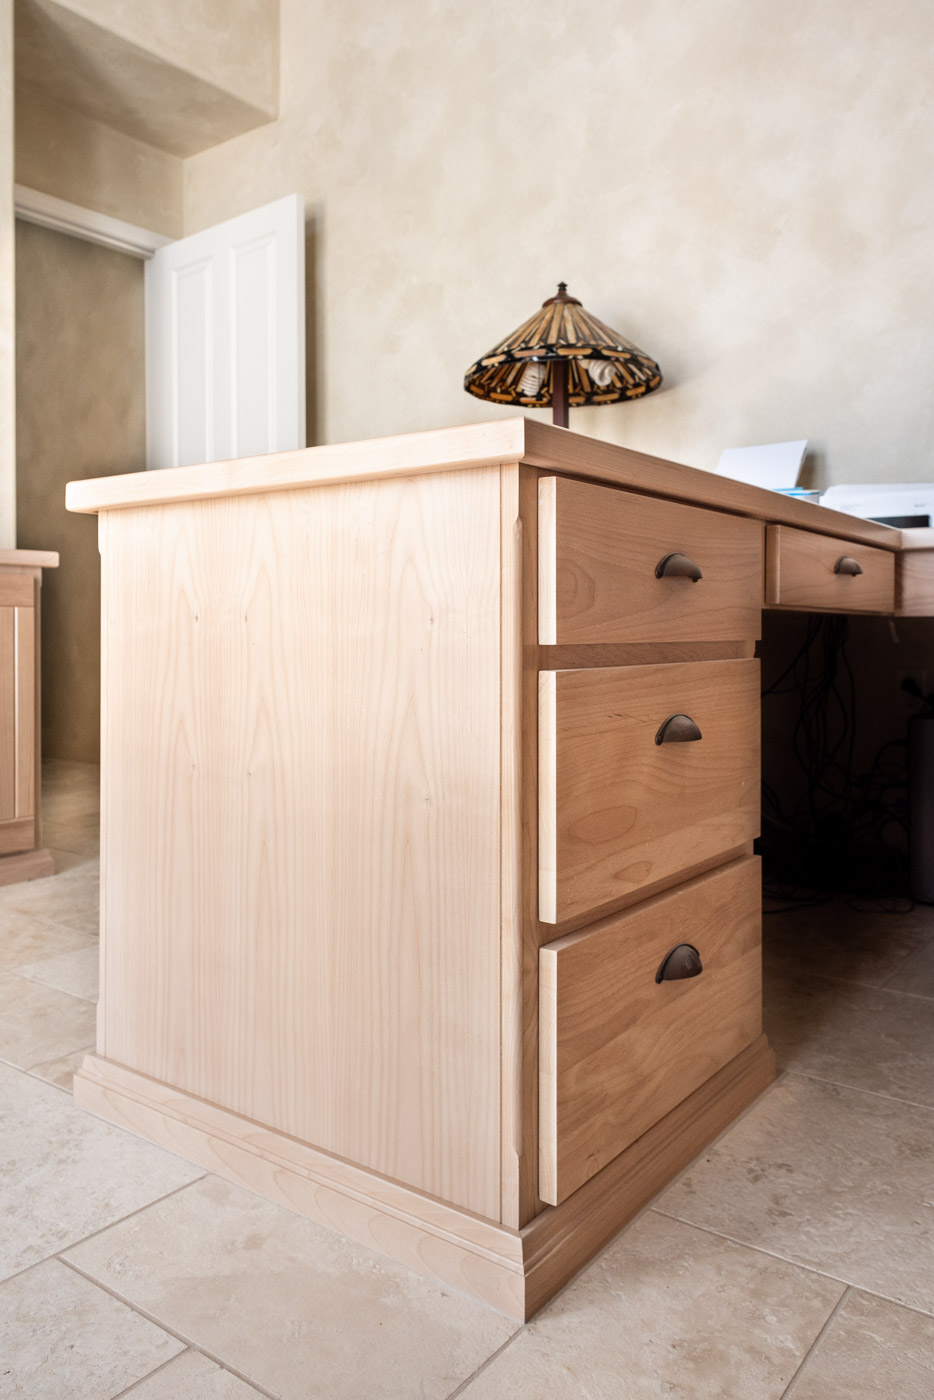 Simple Southwestern custom home office cabinets and desk in white washed wood stain